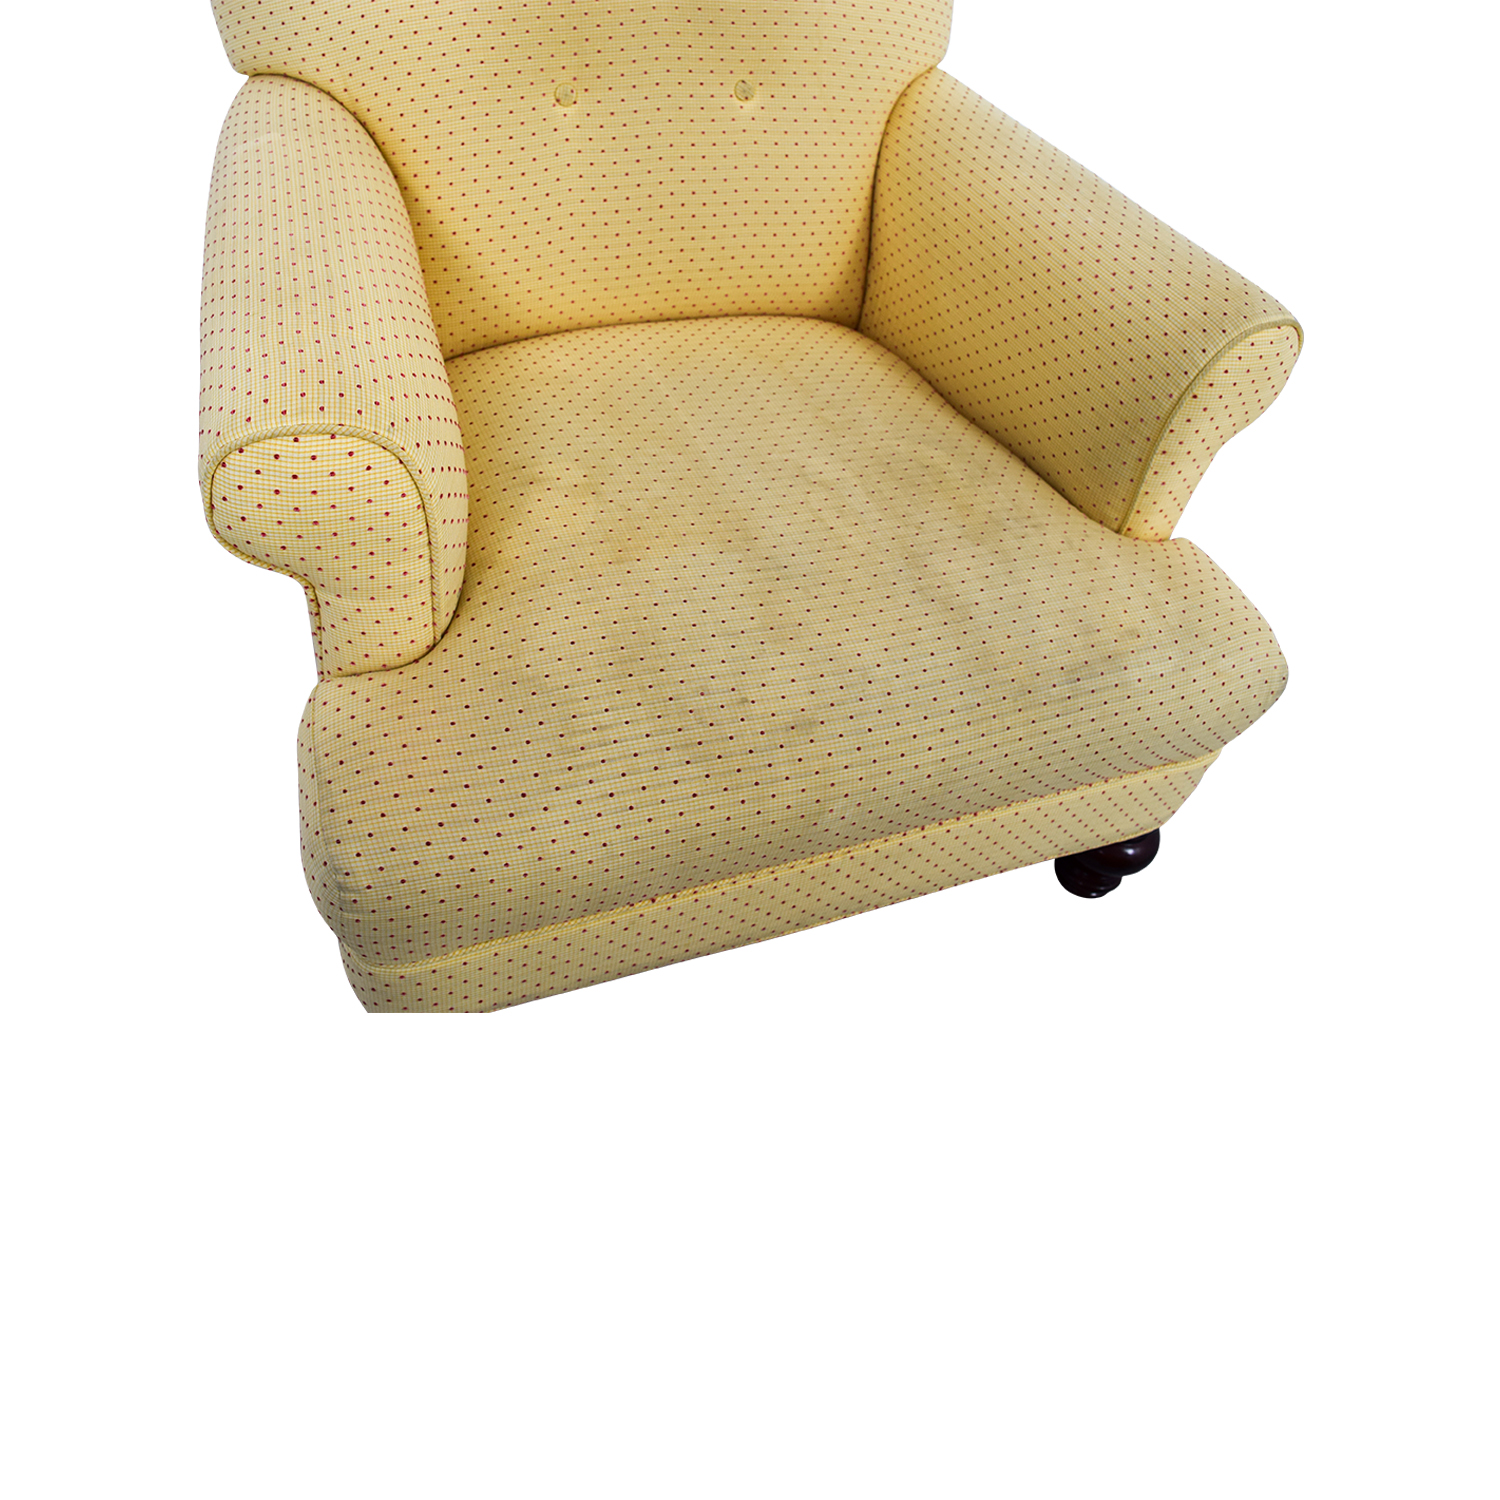 Yellow Arm Chair with Ottoman Chairs